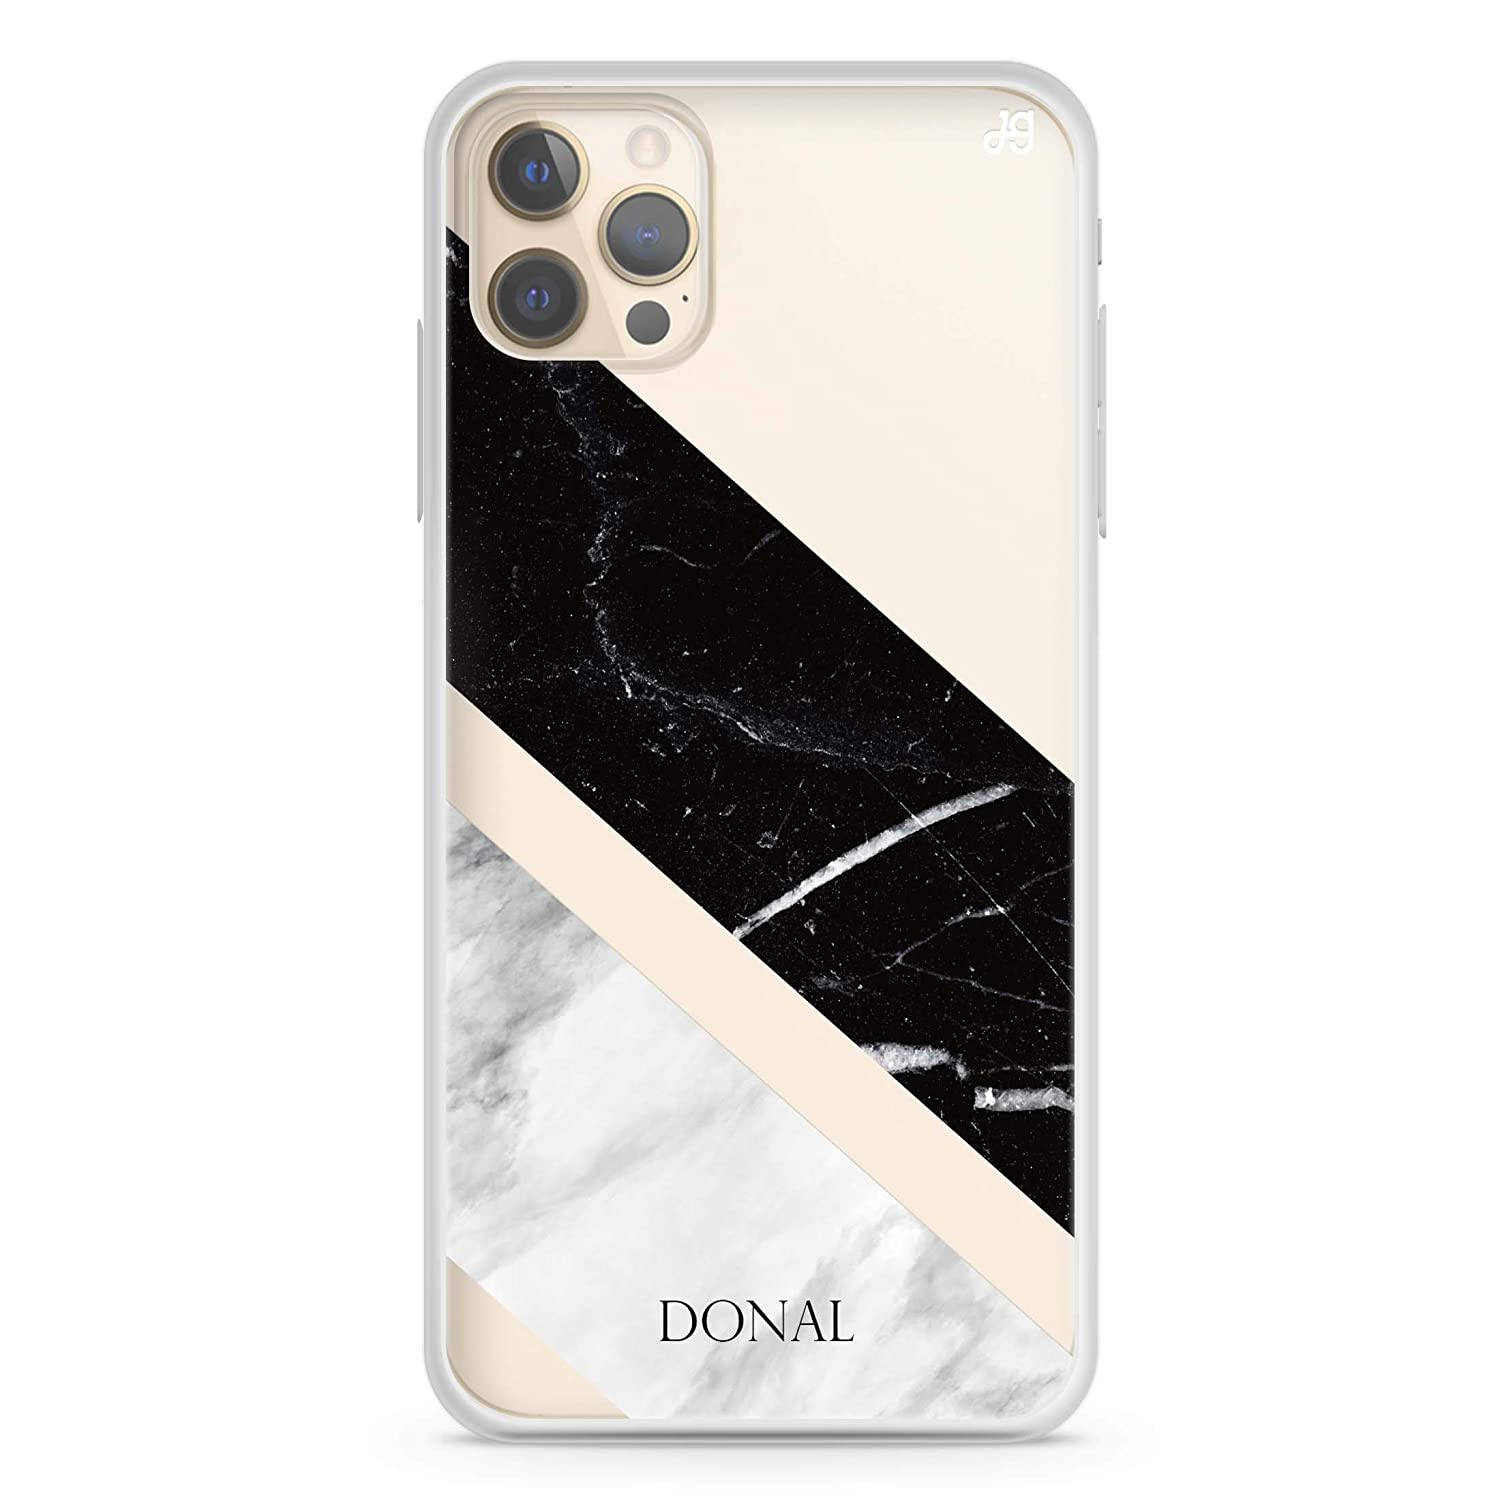 B W Marble iPhone 12 Pro Soft Colorado Springs Mall Case Clear Max free shipping iPhon